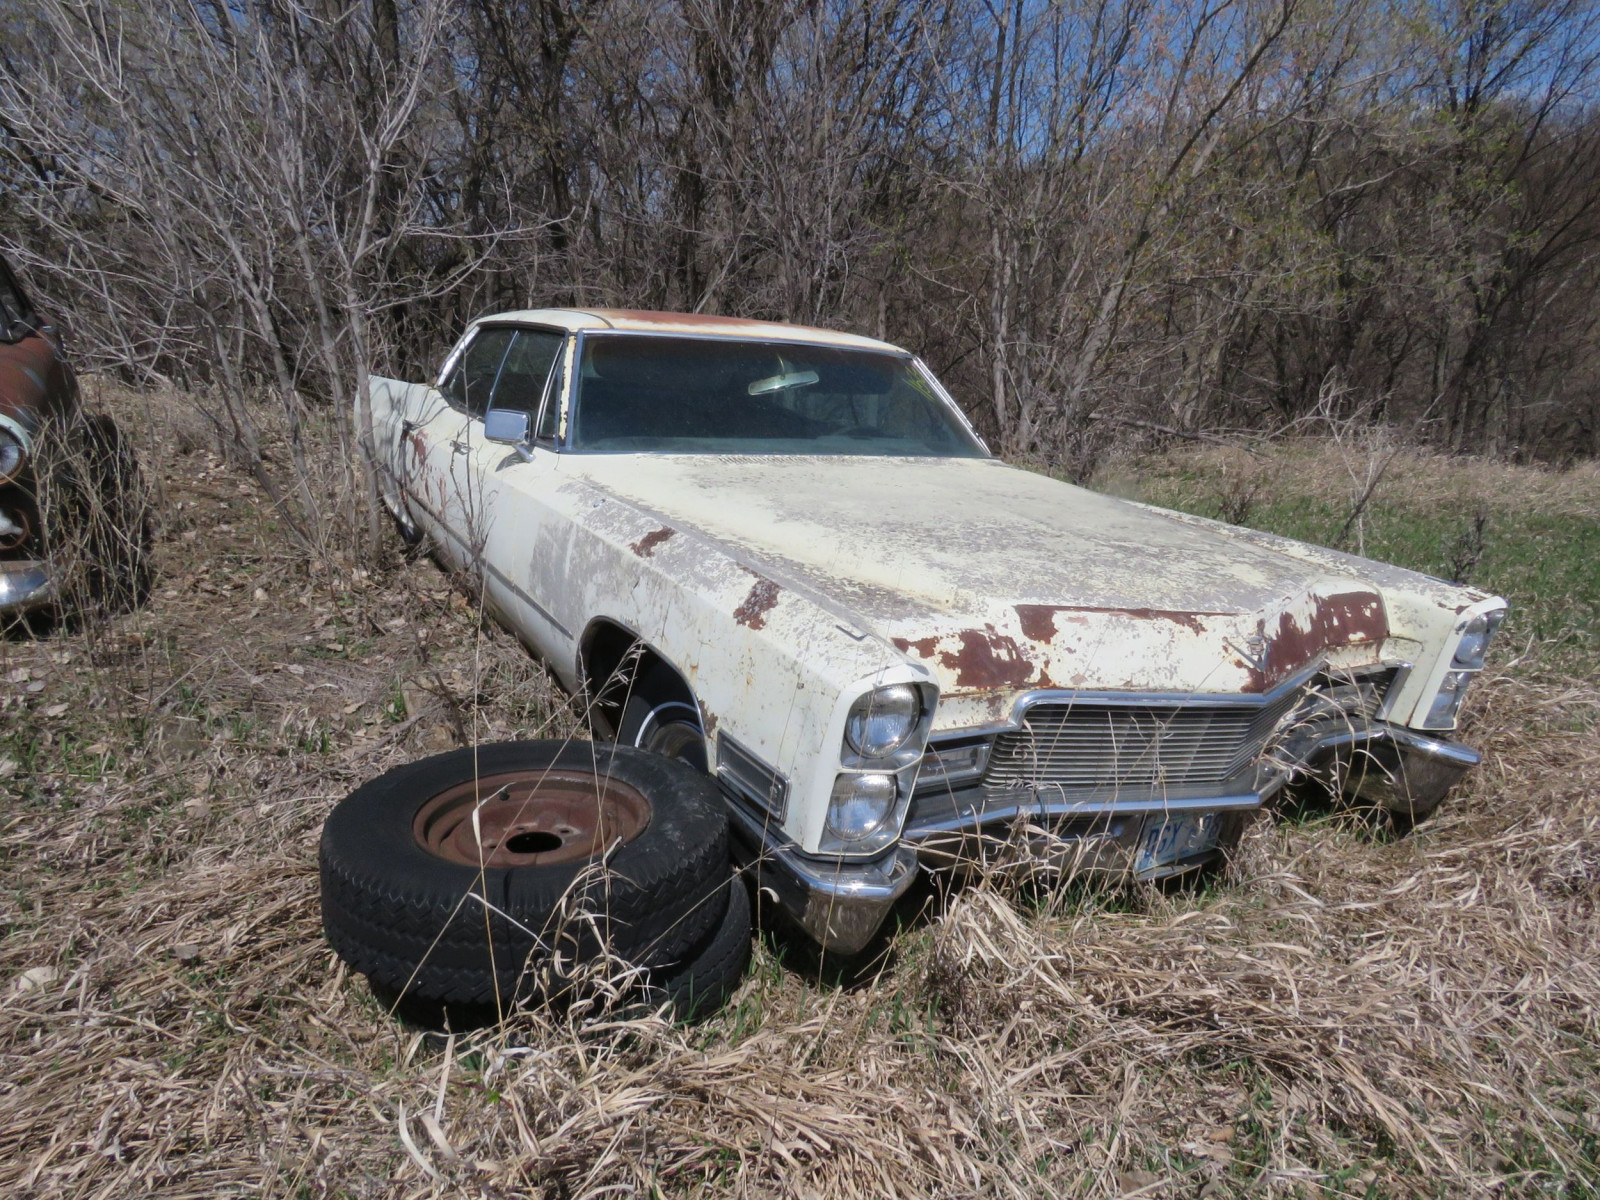 1965 Cadillac 4dr HT for Project or parts - Image 2